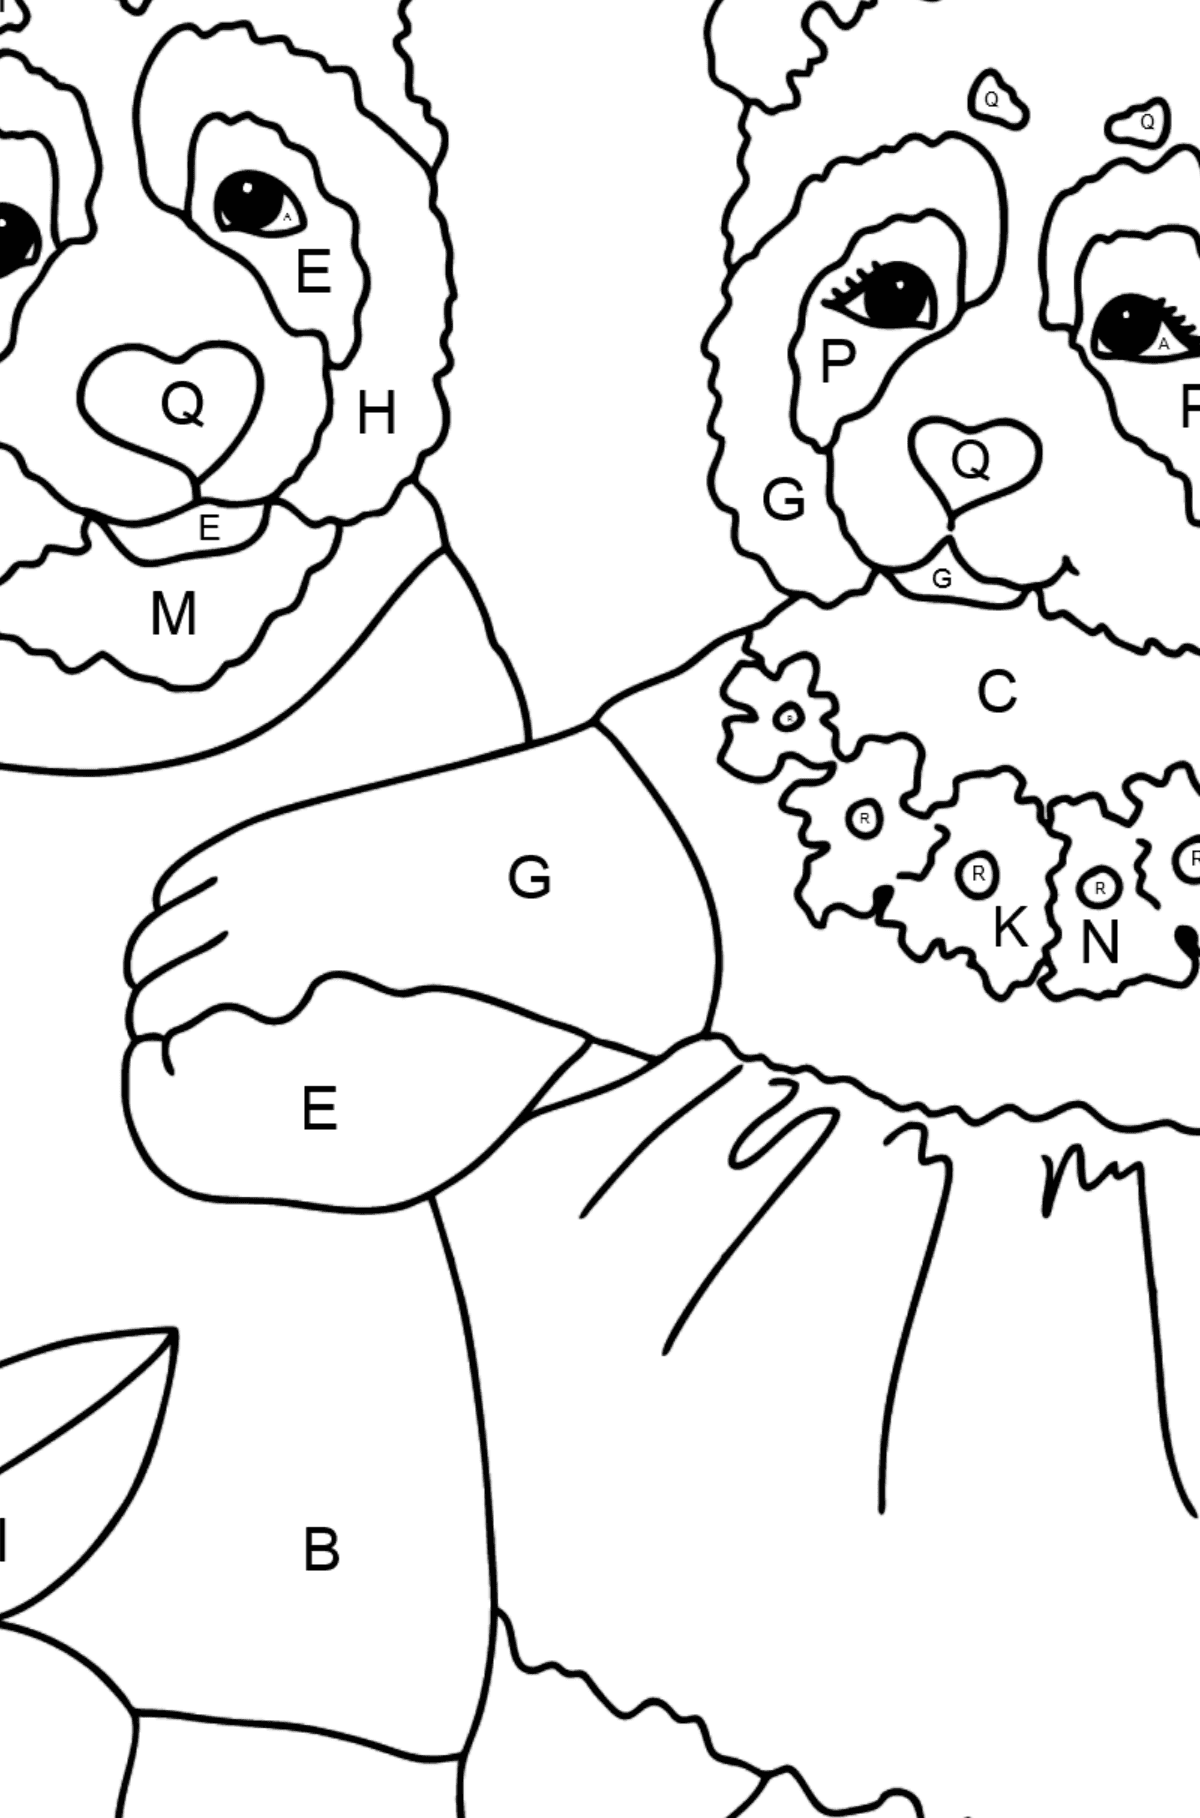 Coloring Page - Pandas are Having a Rest - Coloring by Letters for Kids